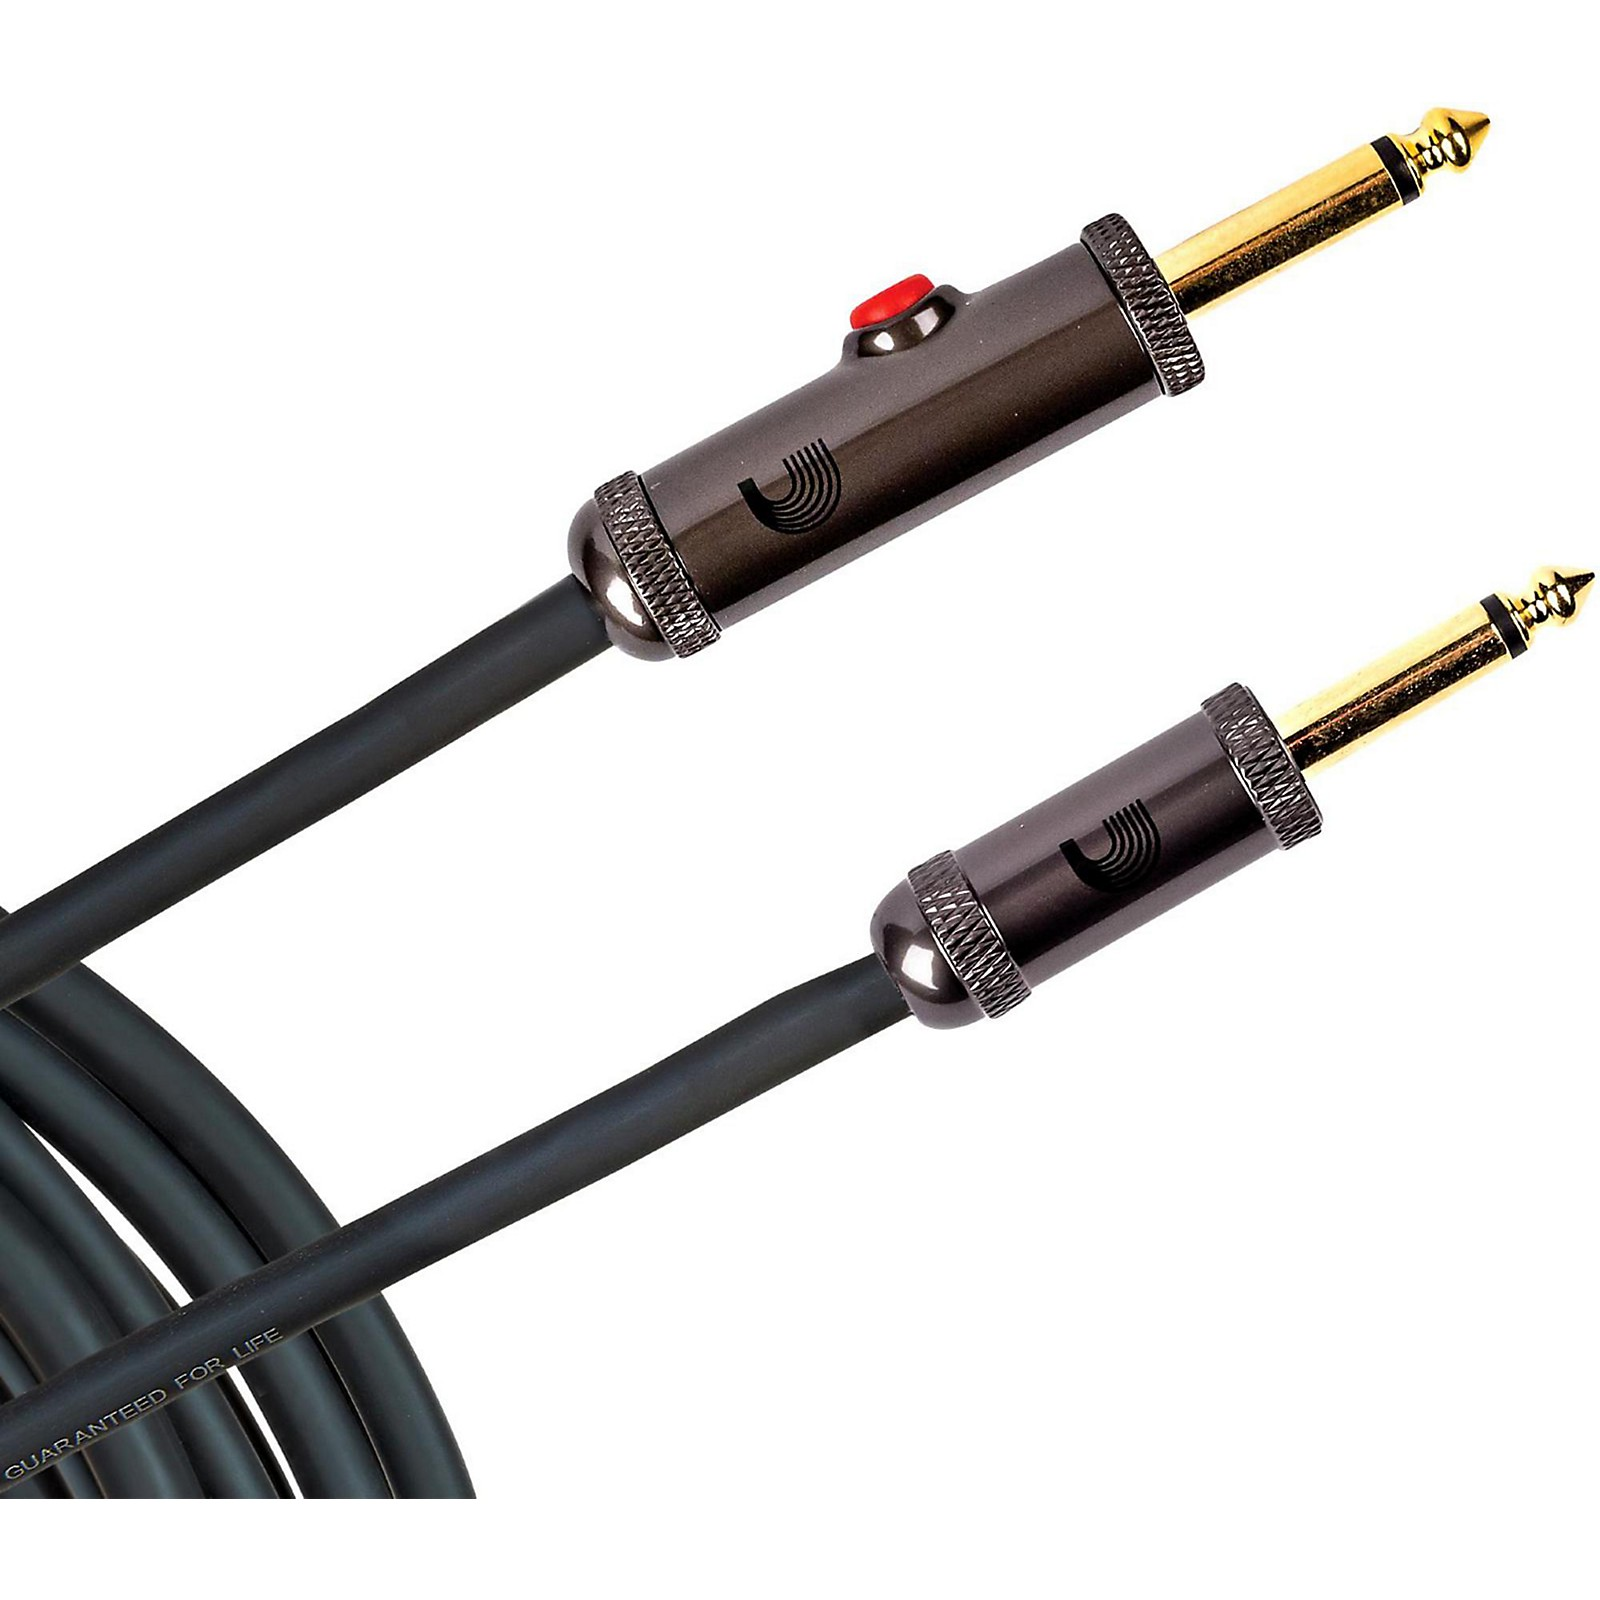 D'Addario Planet Waves Circuit Breaker Instrument Cable with Latching Cut-Off Switch, Straight Plug, by D'Addario